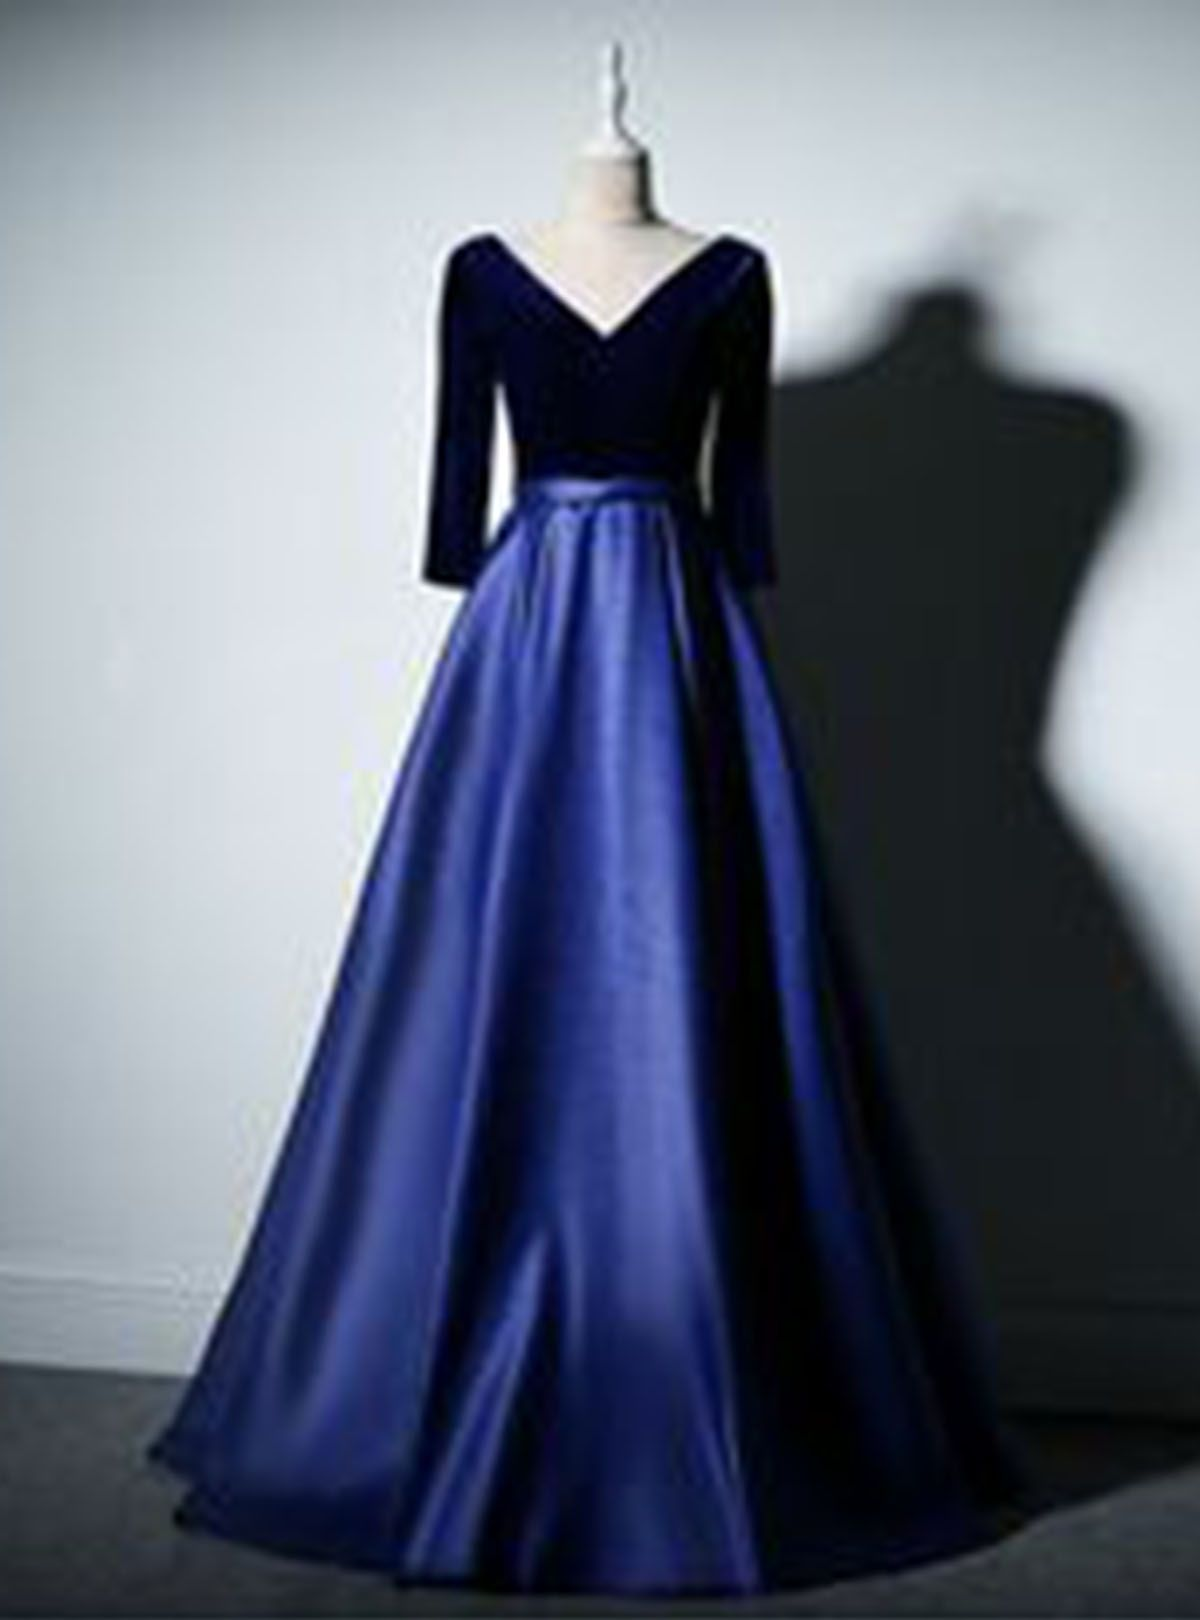 fb00db341e5 Navy blue satin prom dress long evening gown  promdress  promdresses  prom   gowns